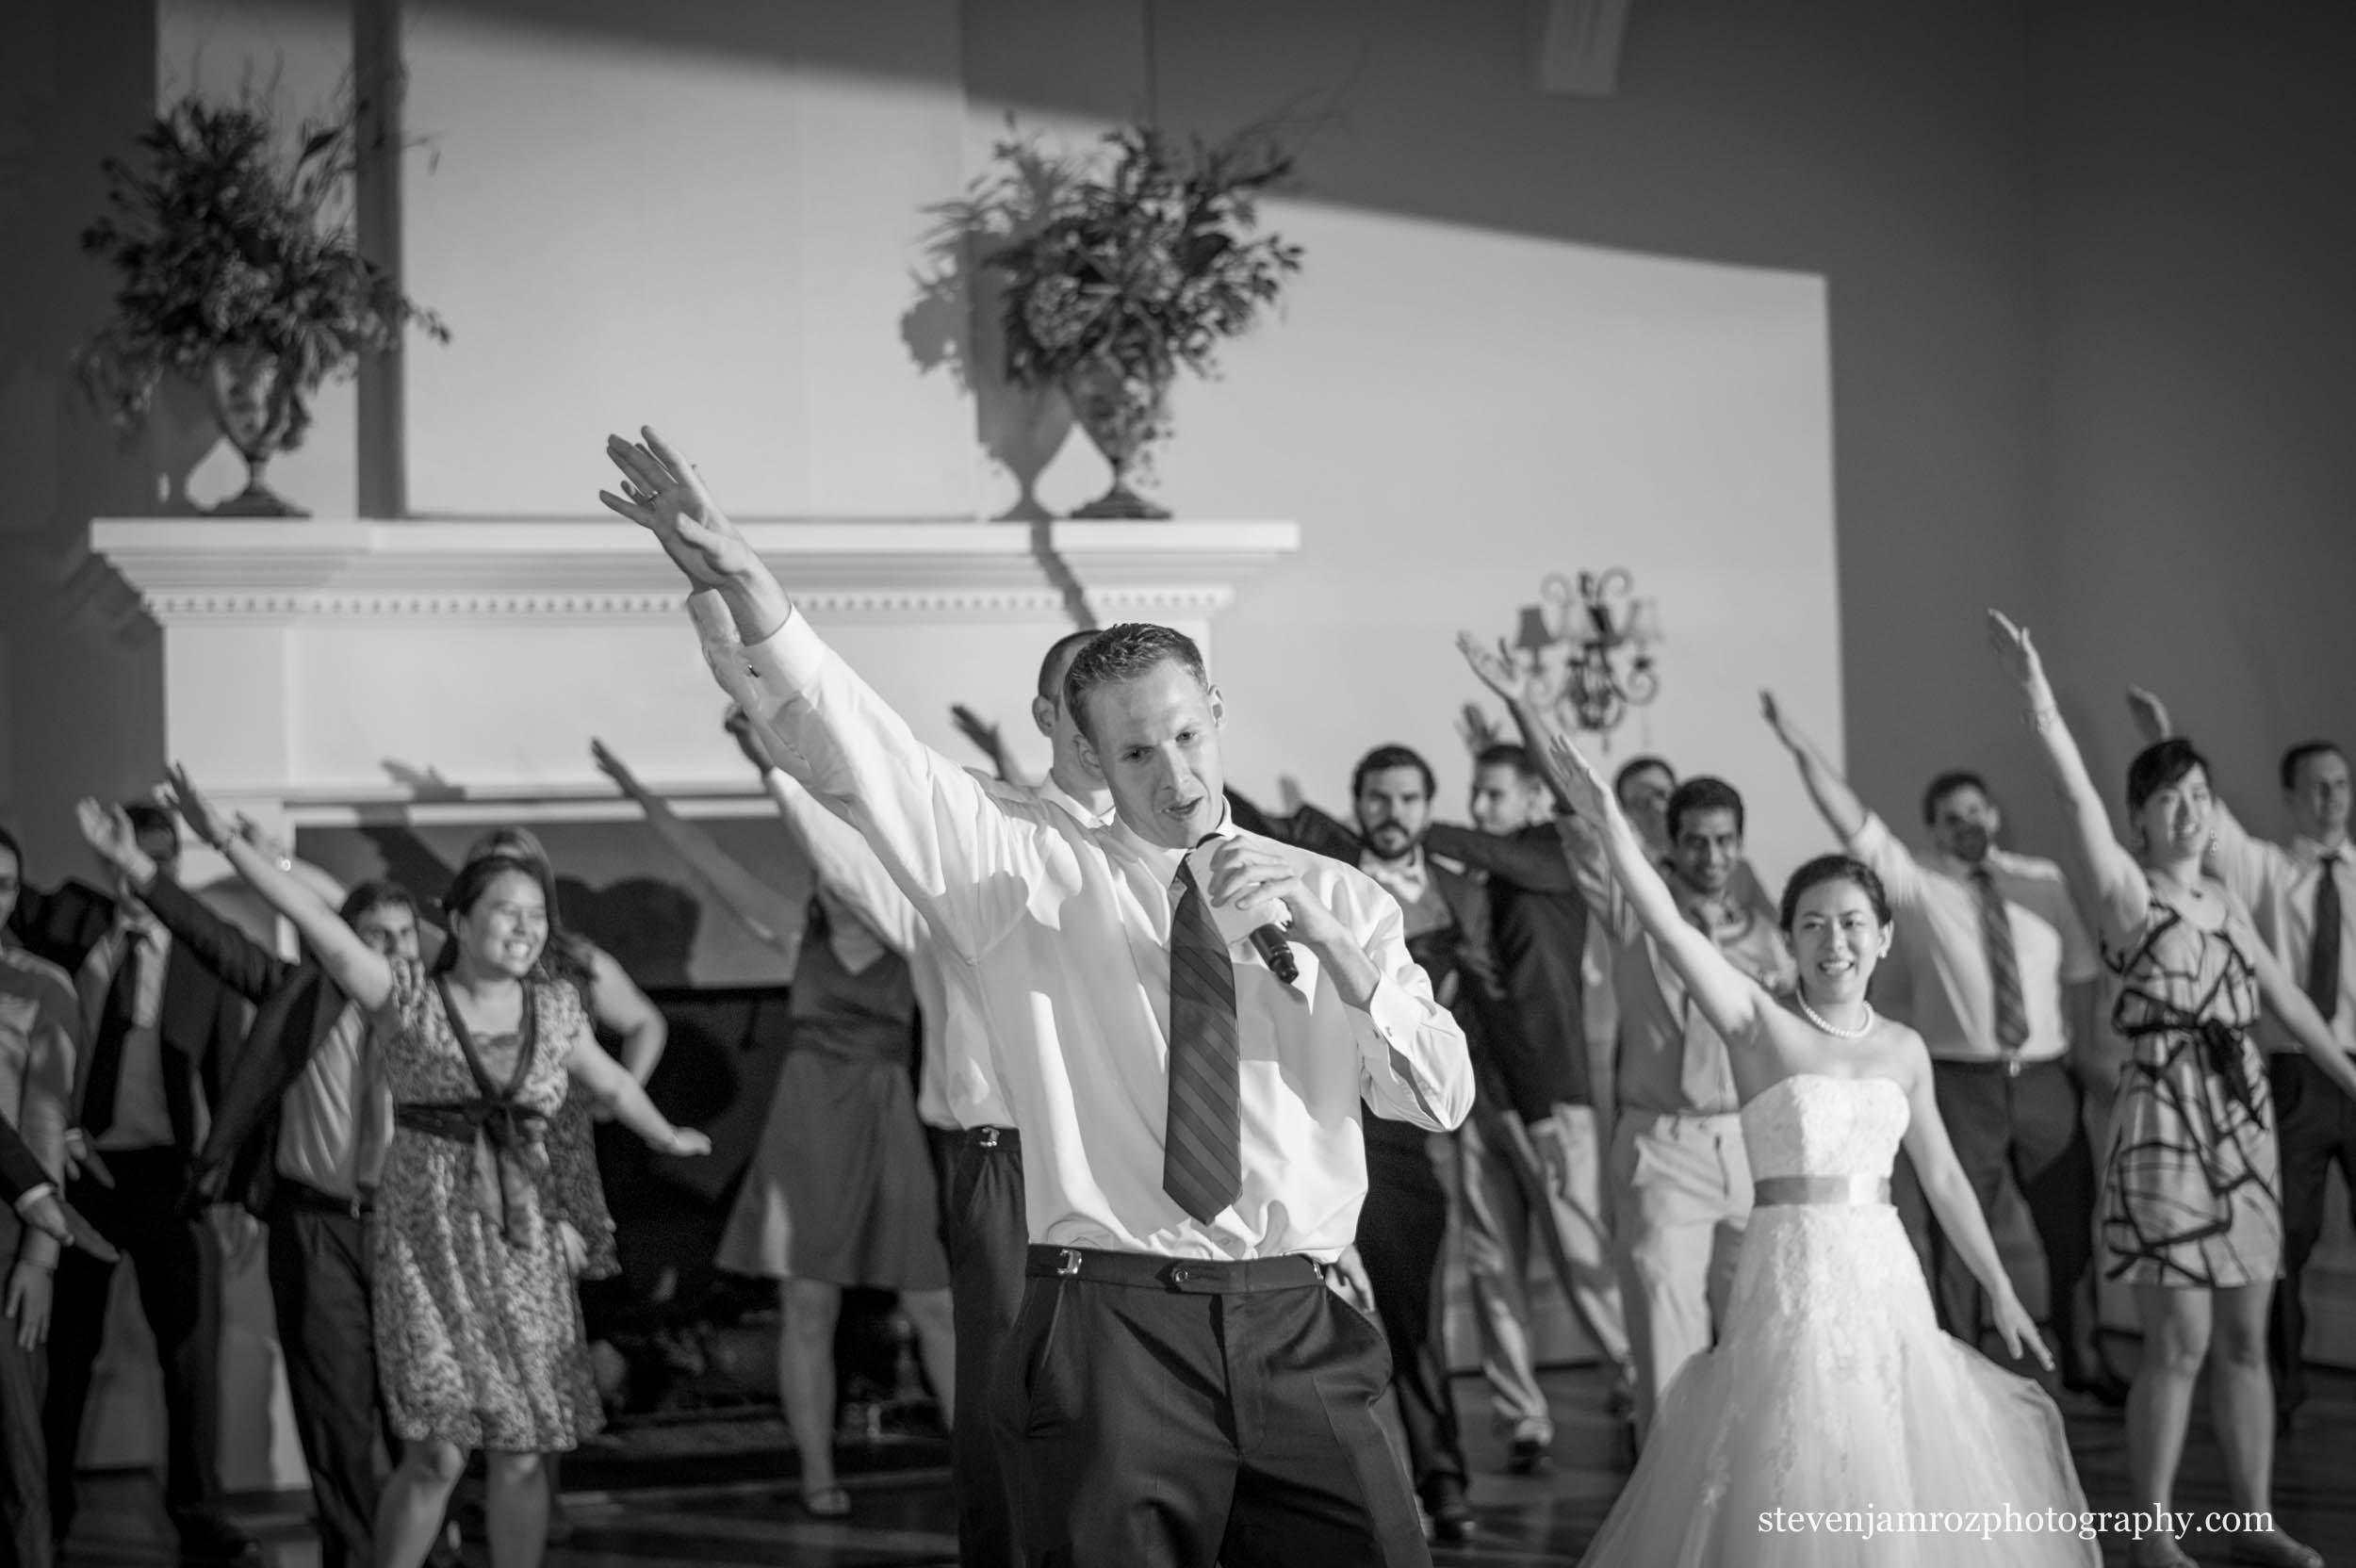 guests-dancing-raleigh-wedding-photography-0971.jpg